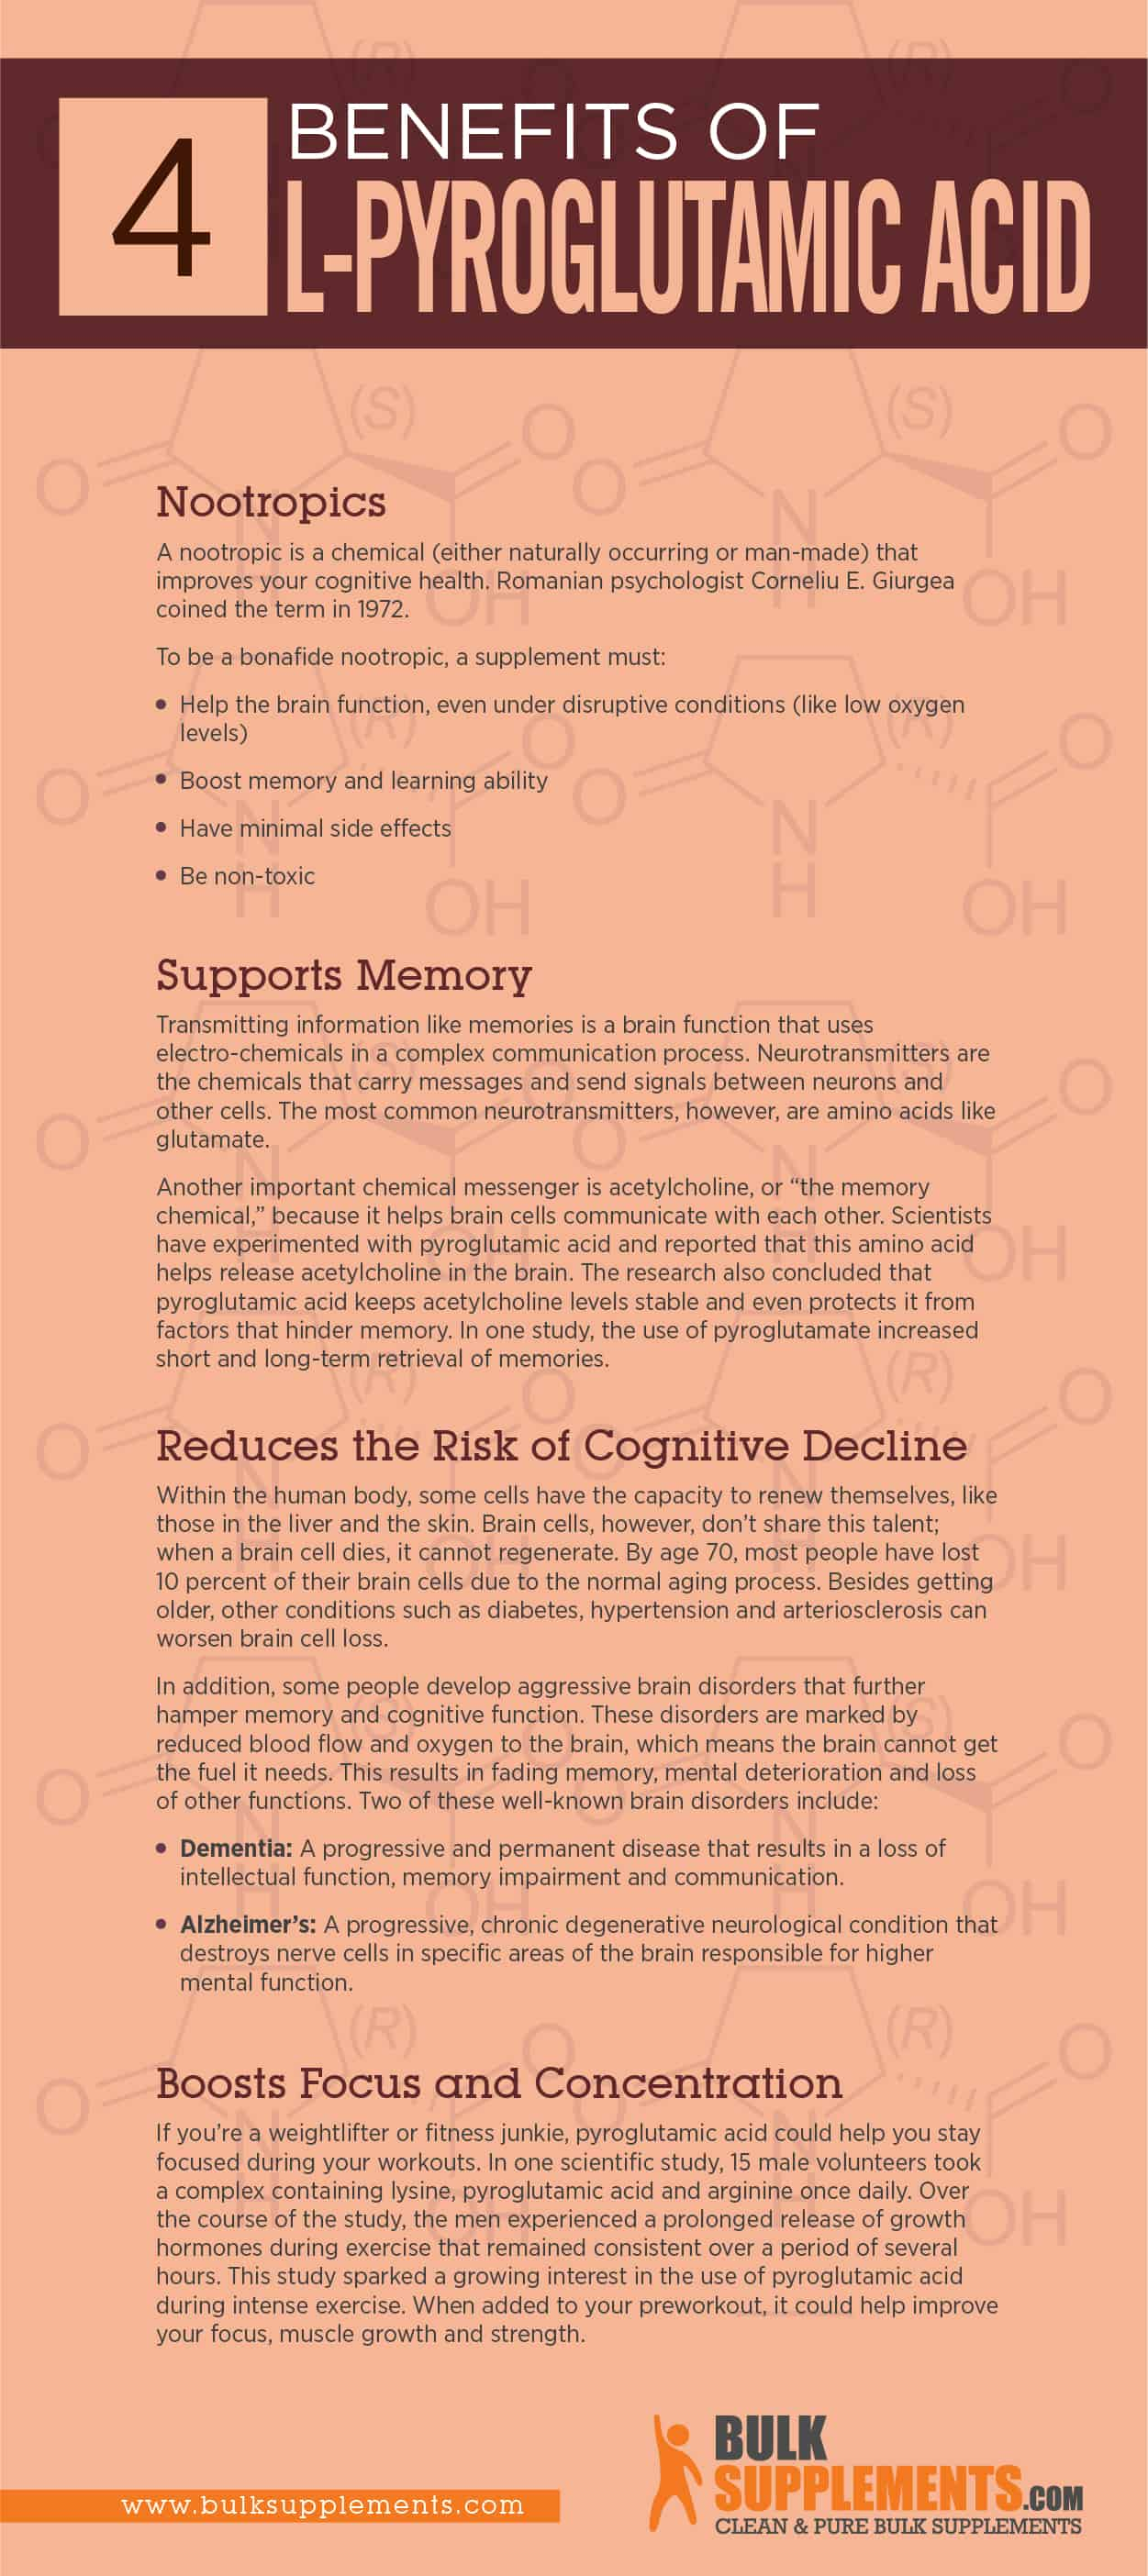 L-Pyroglutamic Acid benefits infographic